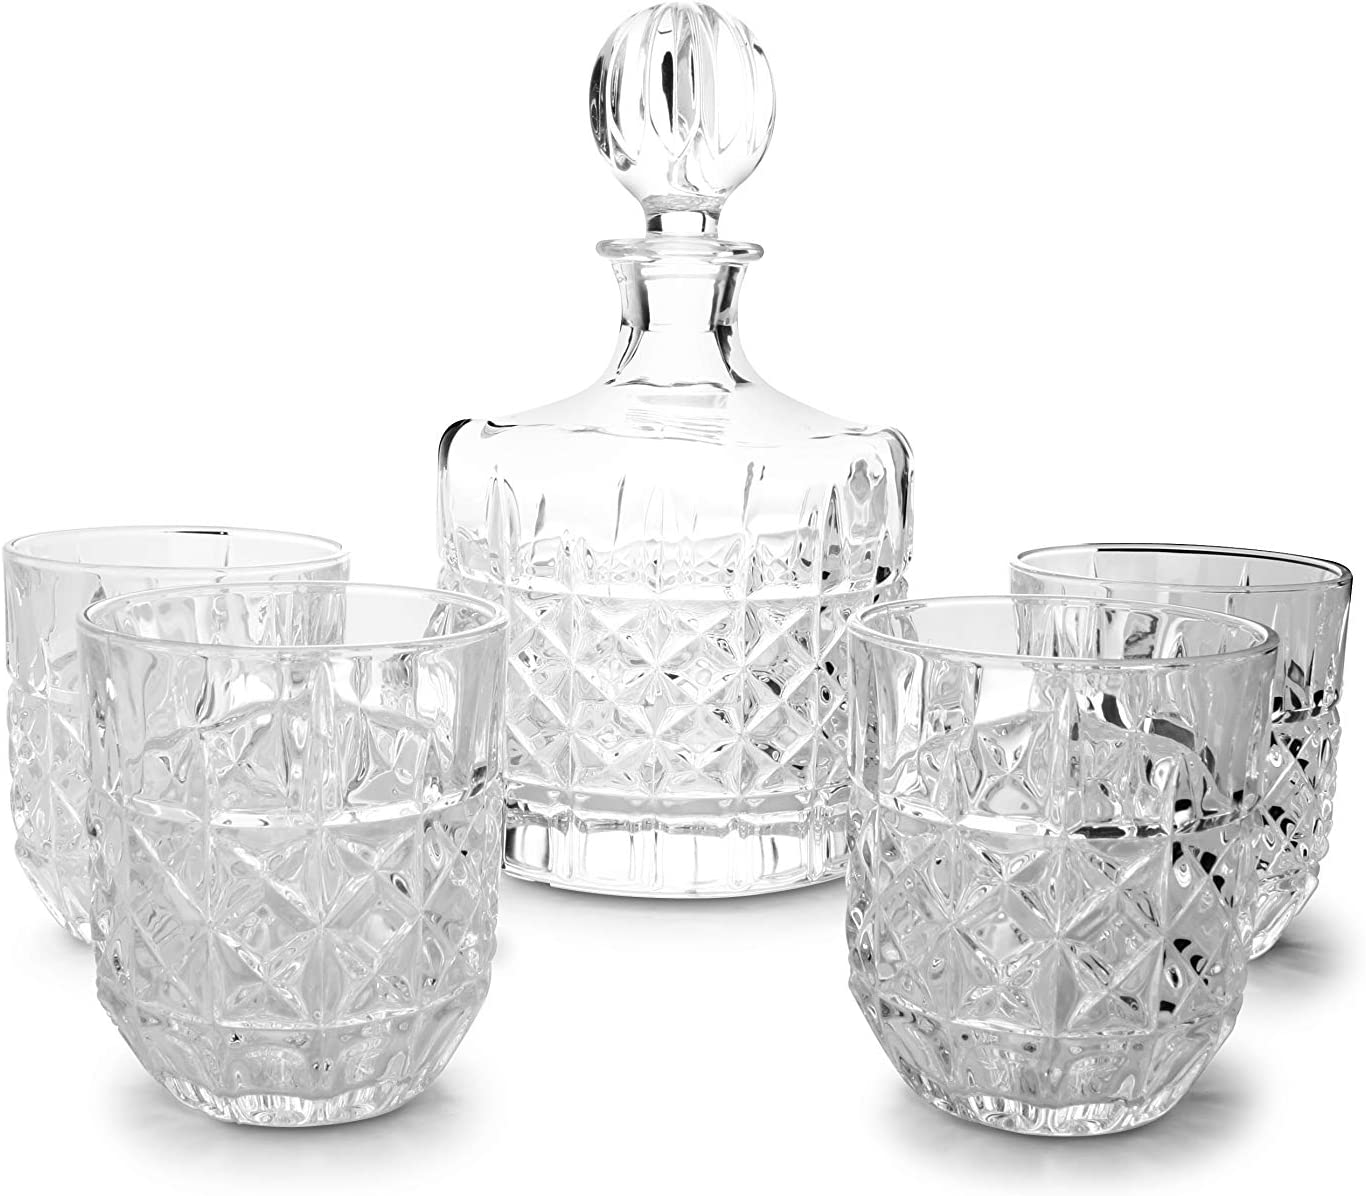 Finest Crystal Glass Carafe with 4 Glasses Salt/&Pepper Whisky Set Glasses 5 Pieces 4X Glasses 28cl// 9.4 oz and 1x Carafe 1.1L// 37.19 oz in Transparent Glass with a Vintage Design